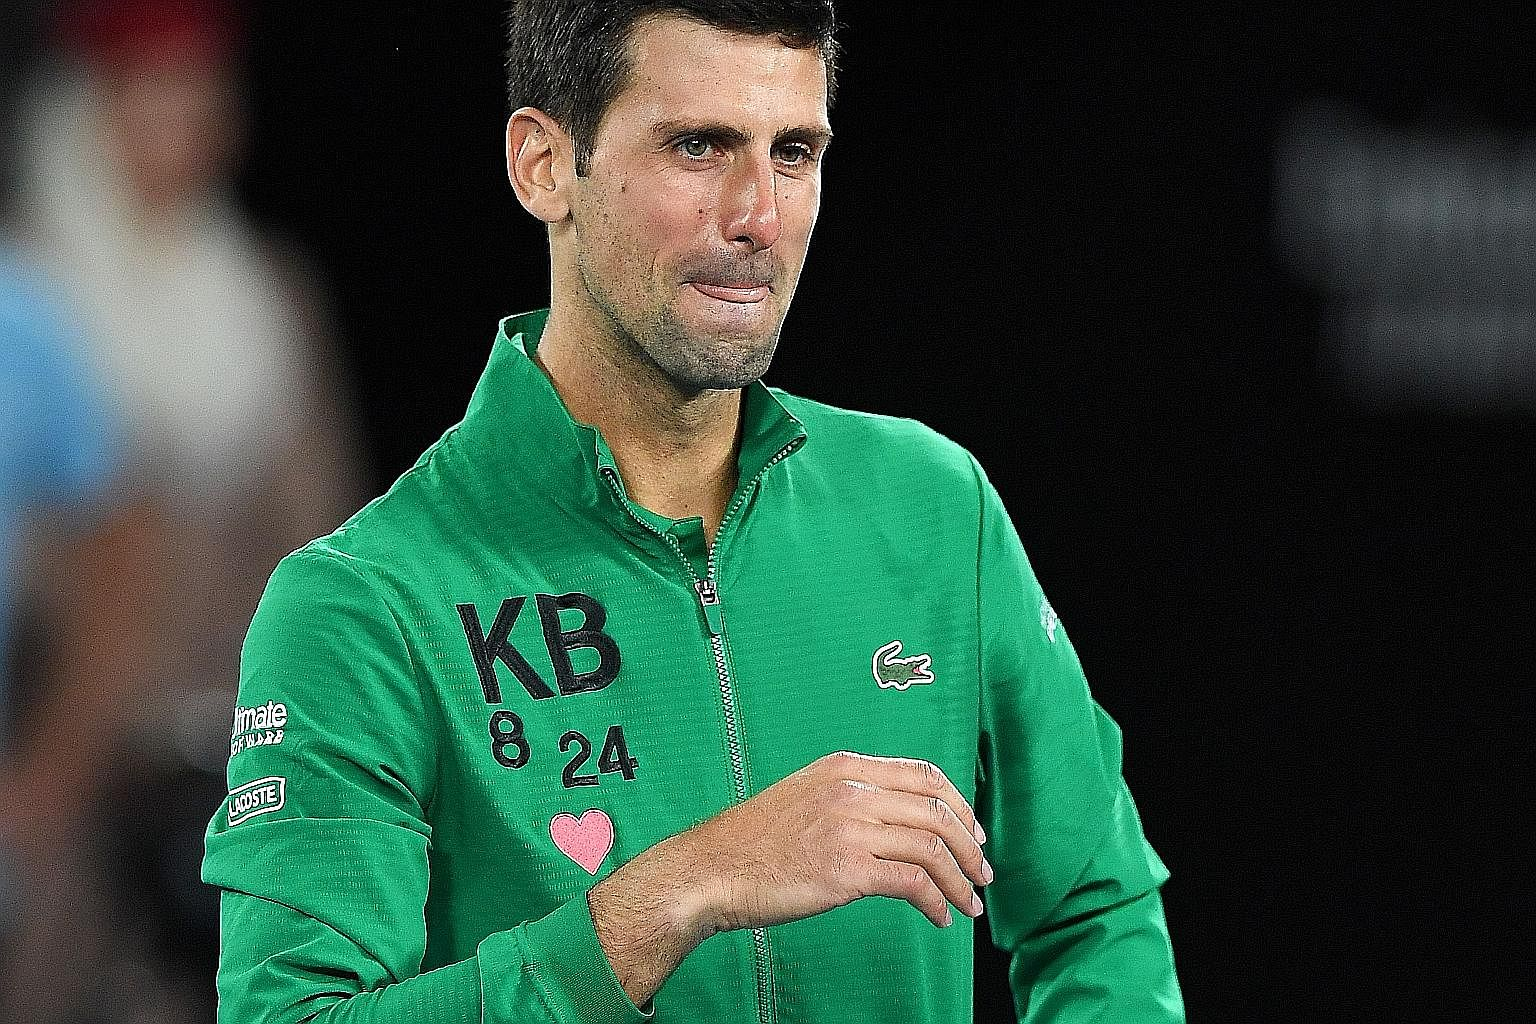 Djokovic Has His Eye On The Prize Tennis News Top Stories The Straits Times